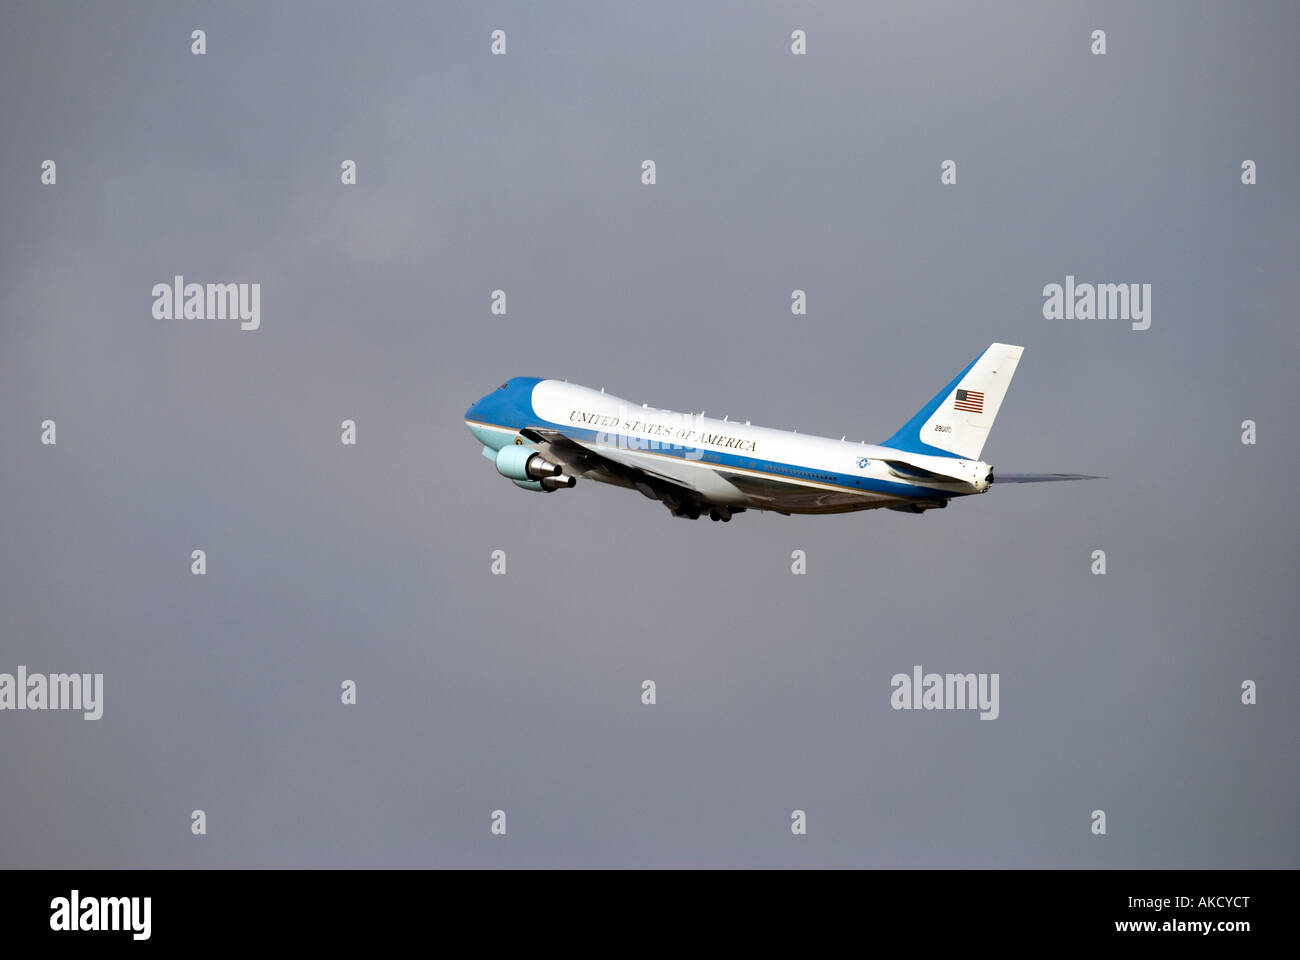 US air force one taking off from Fiumicino Airport in Rome - Stock Image